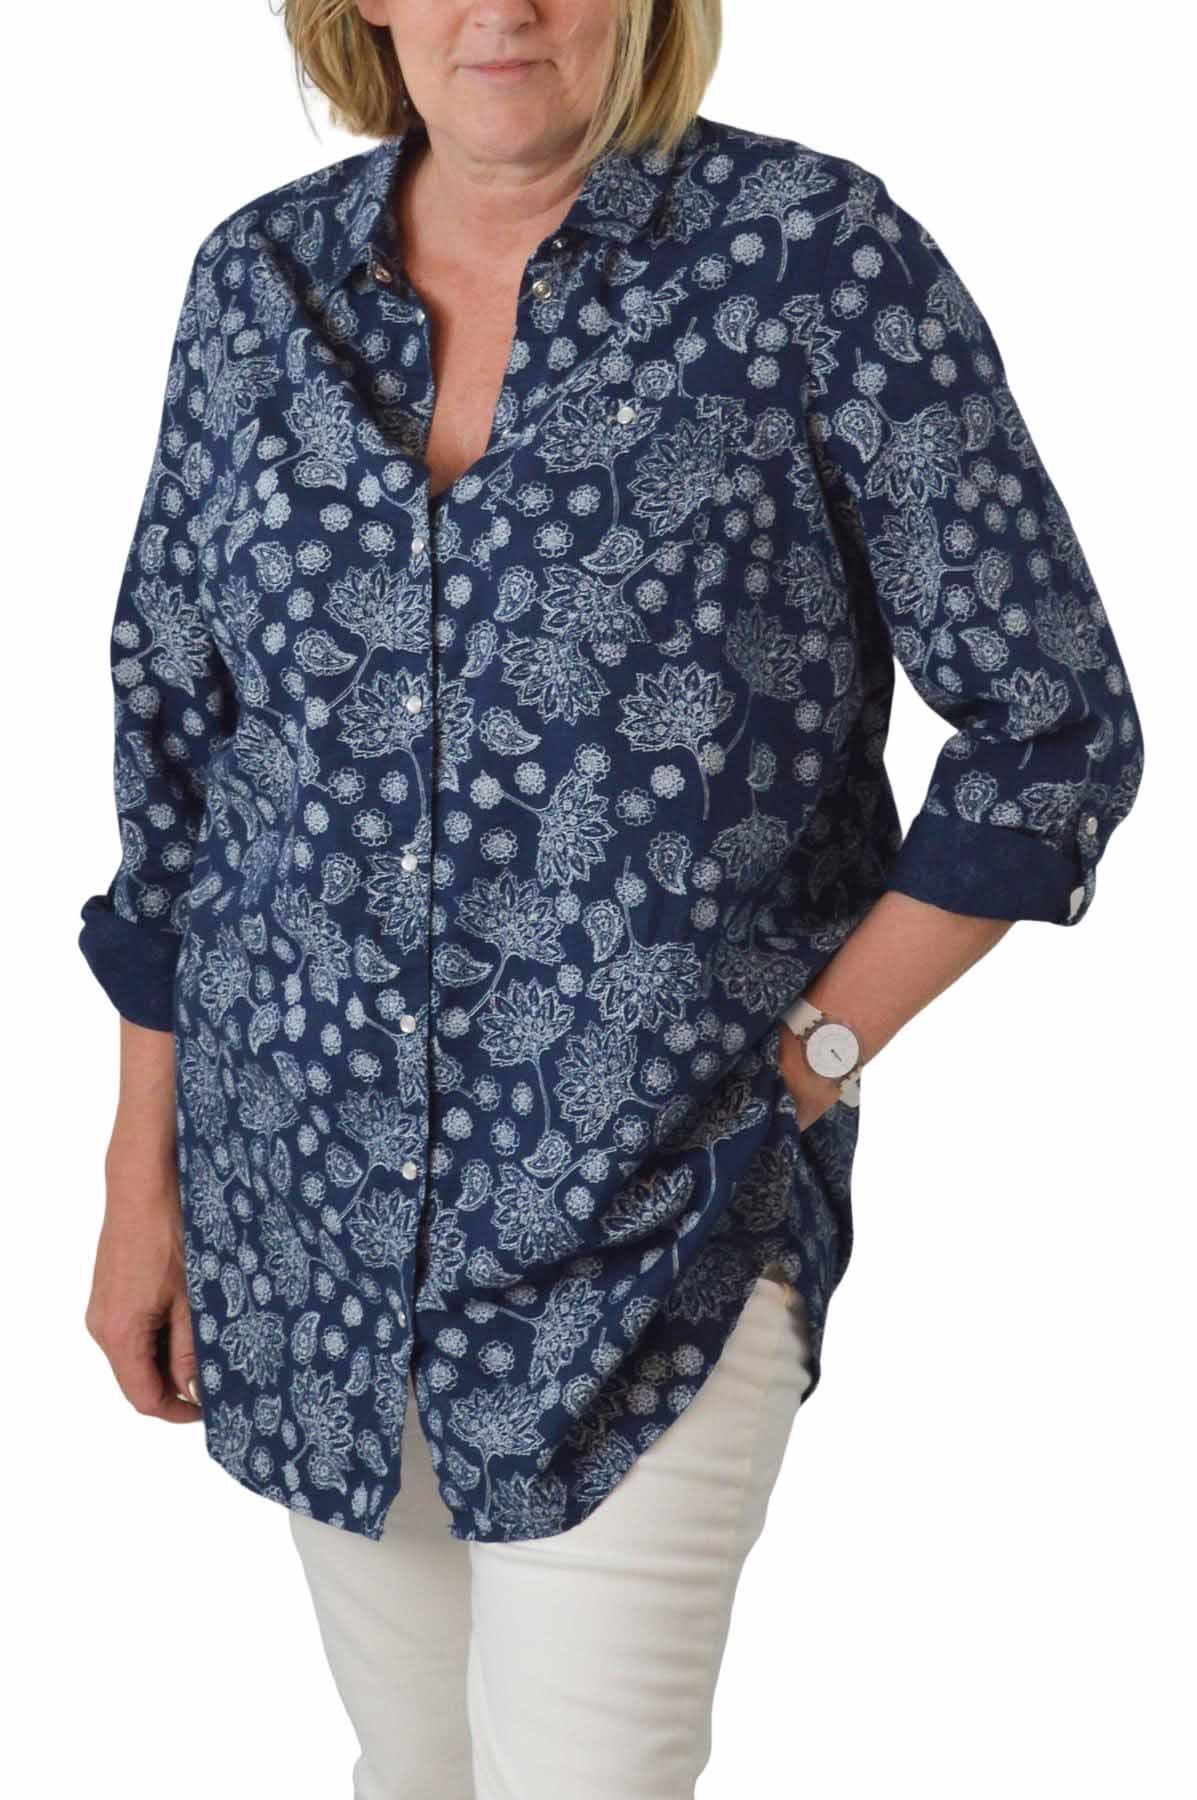 NEW-Ex-C-amp-A-Ladies-Navy-Ivory-Floral-Long-Linen-Shirt-Curved-Hem-Size-16-34 thumbnail 8